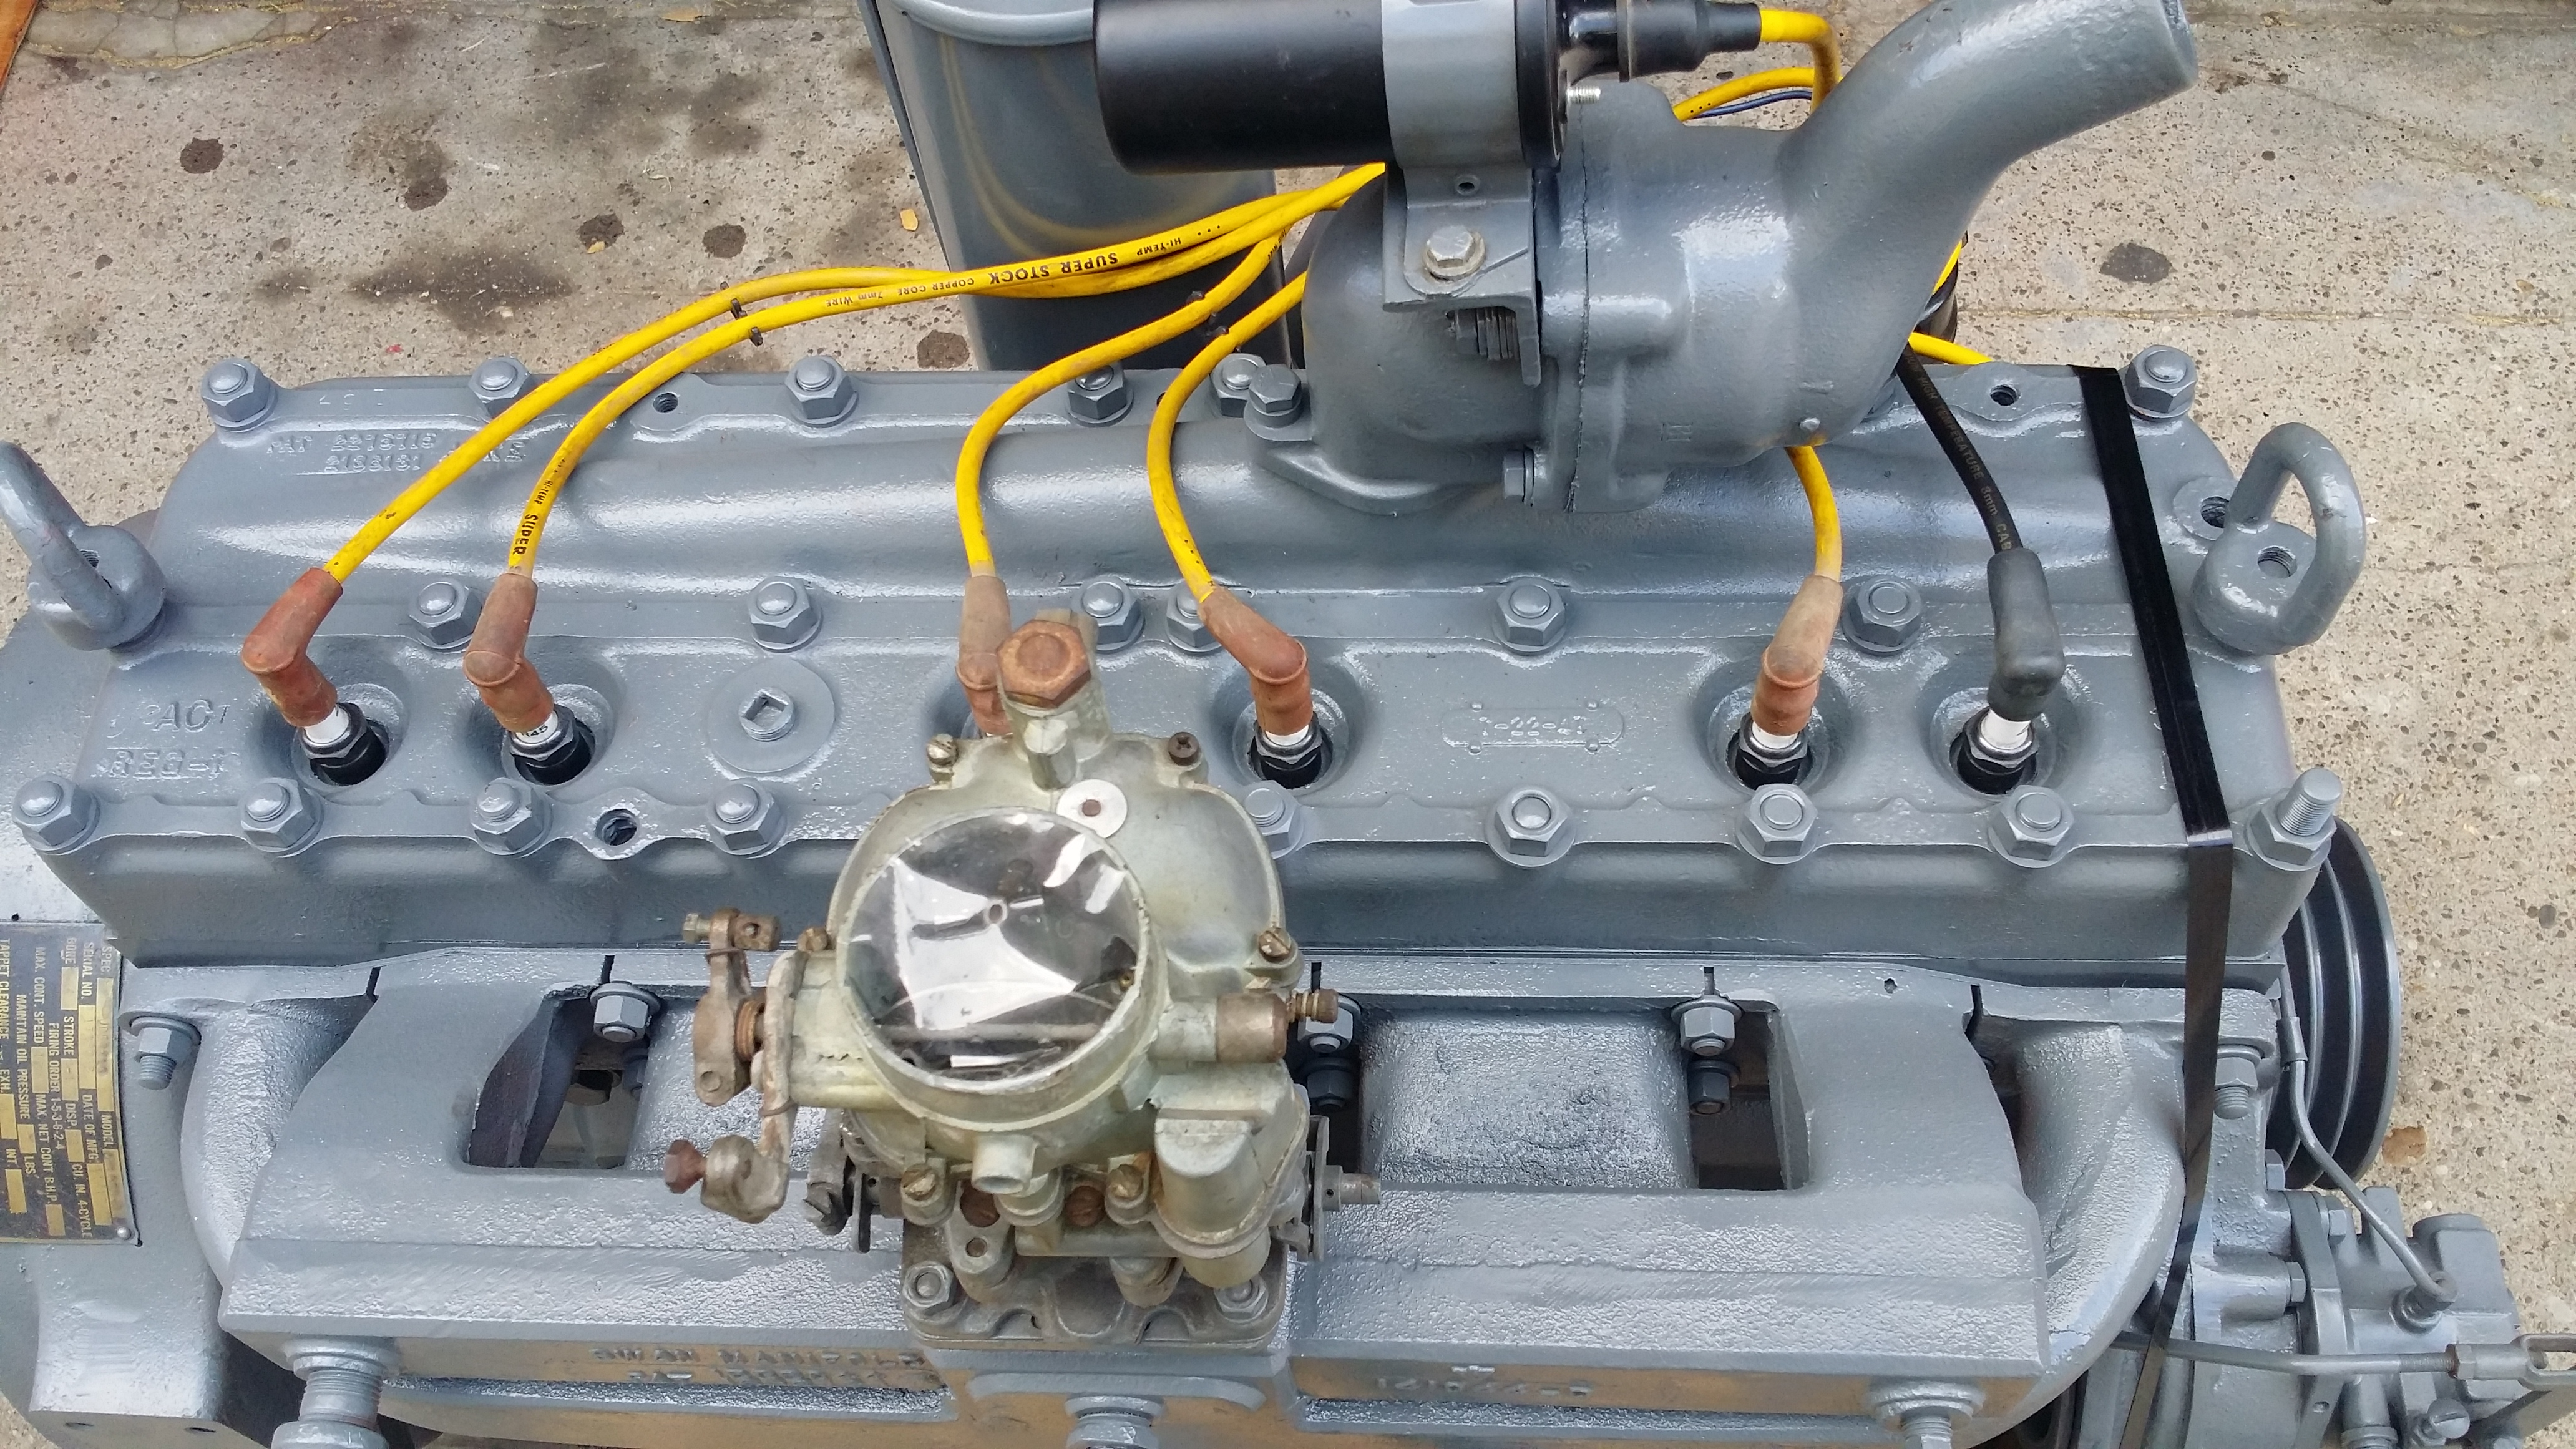 Hercules 6 Cylinder Engines Pictures To Pin On Pinterest